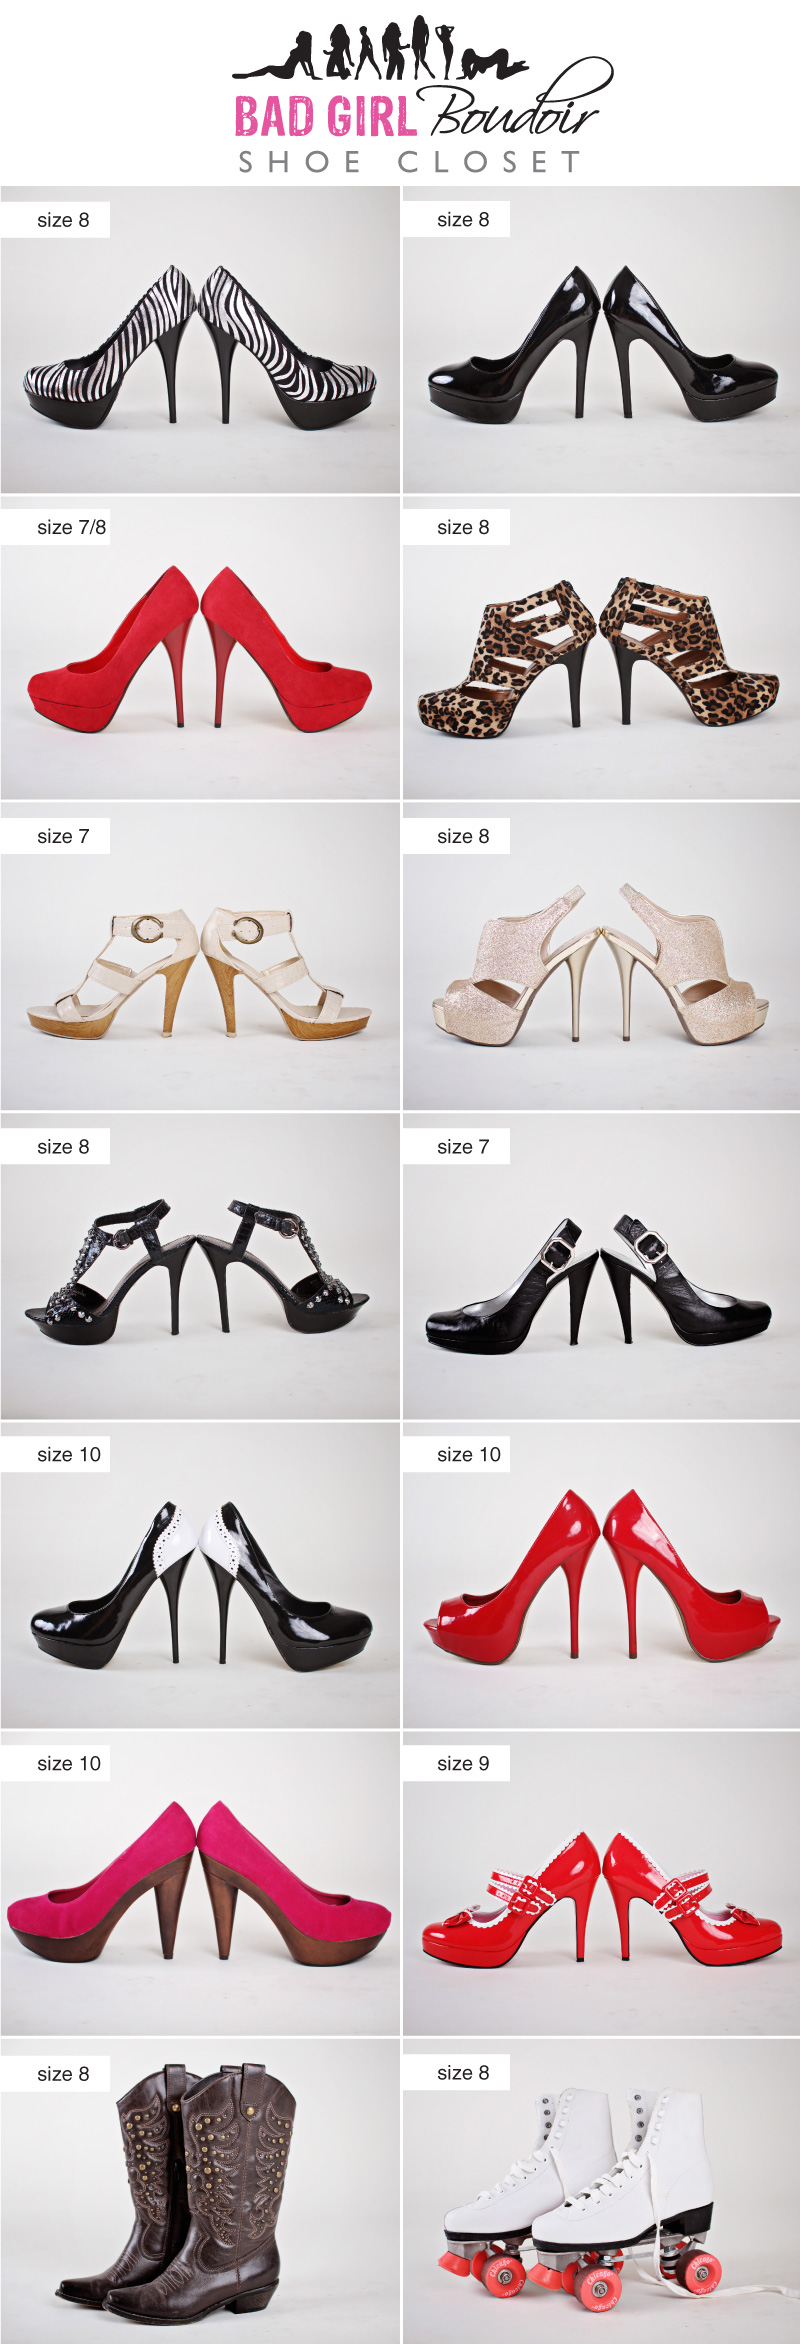 Boudoir Photography Studio Shoe Selection